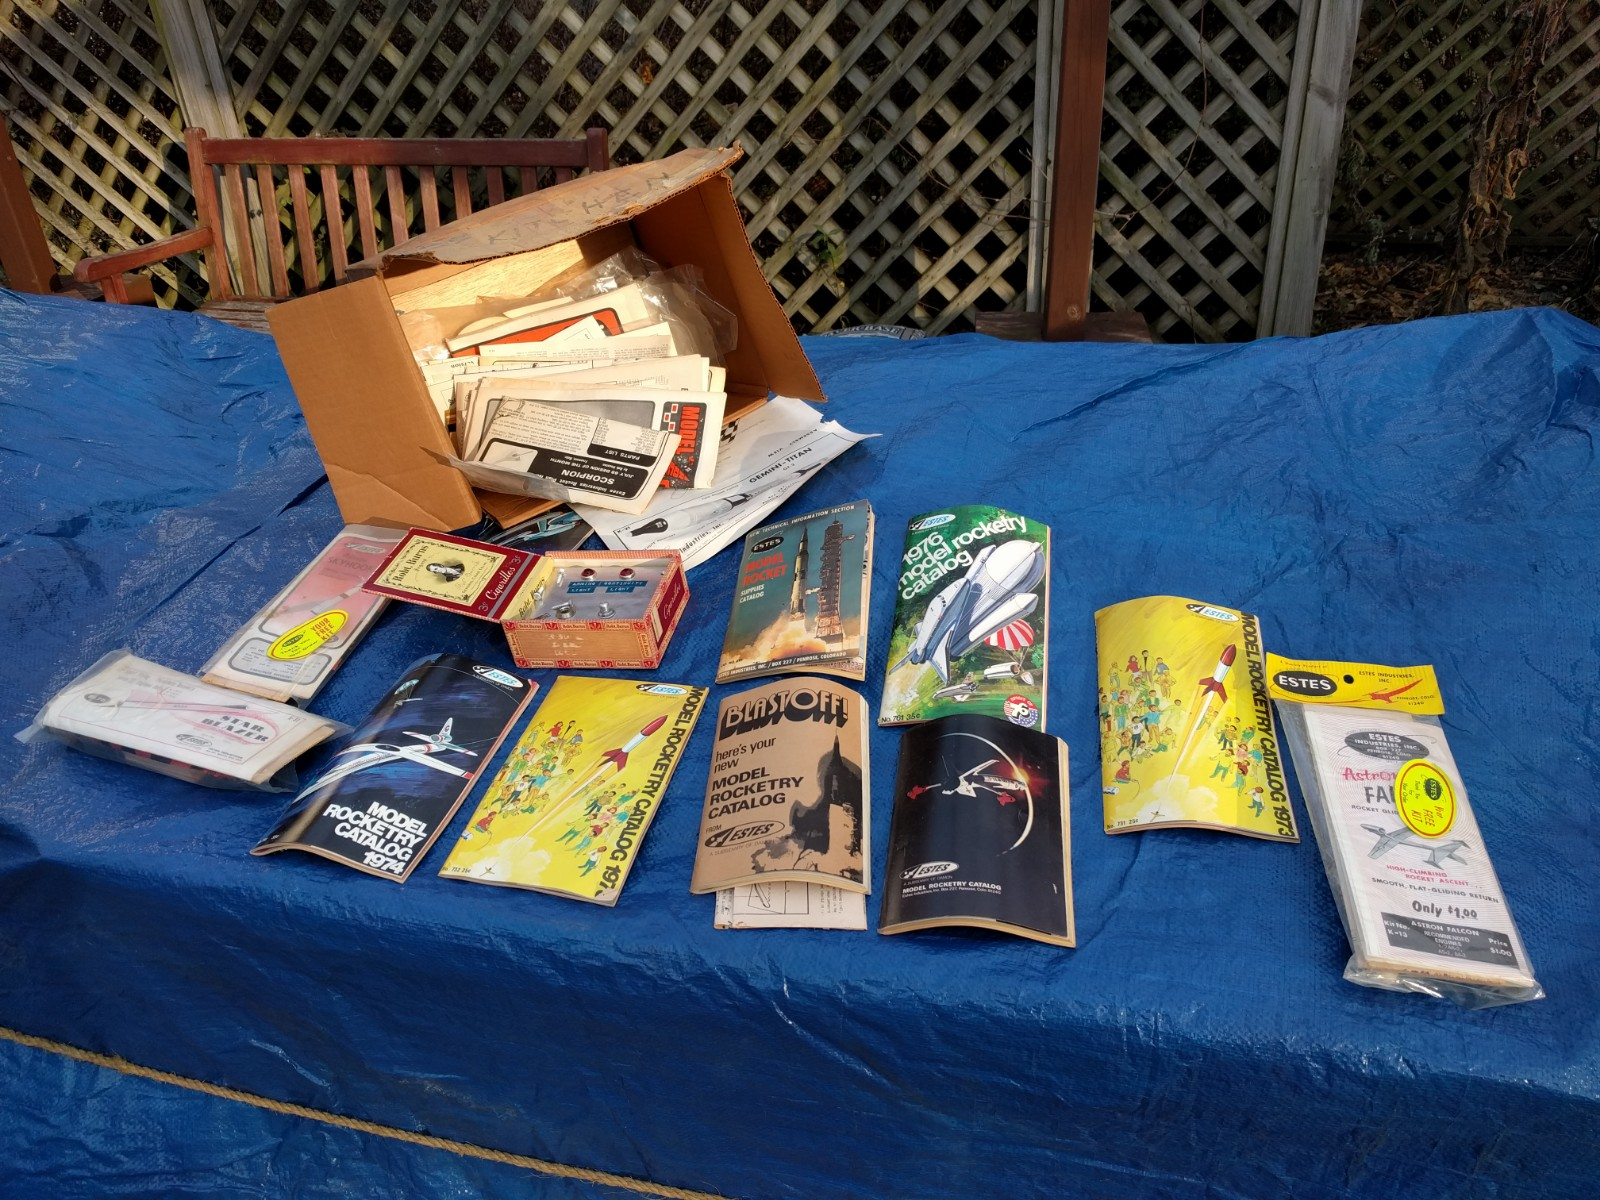 For sale: vintage Estes rocket materials | News